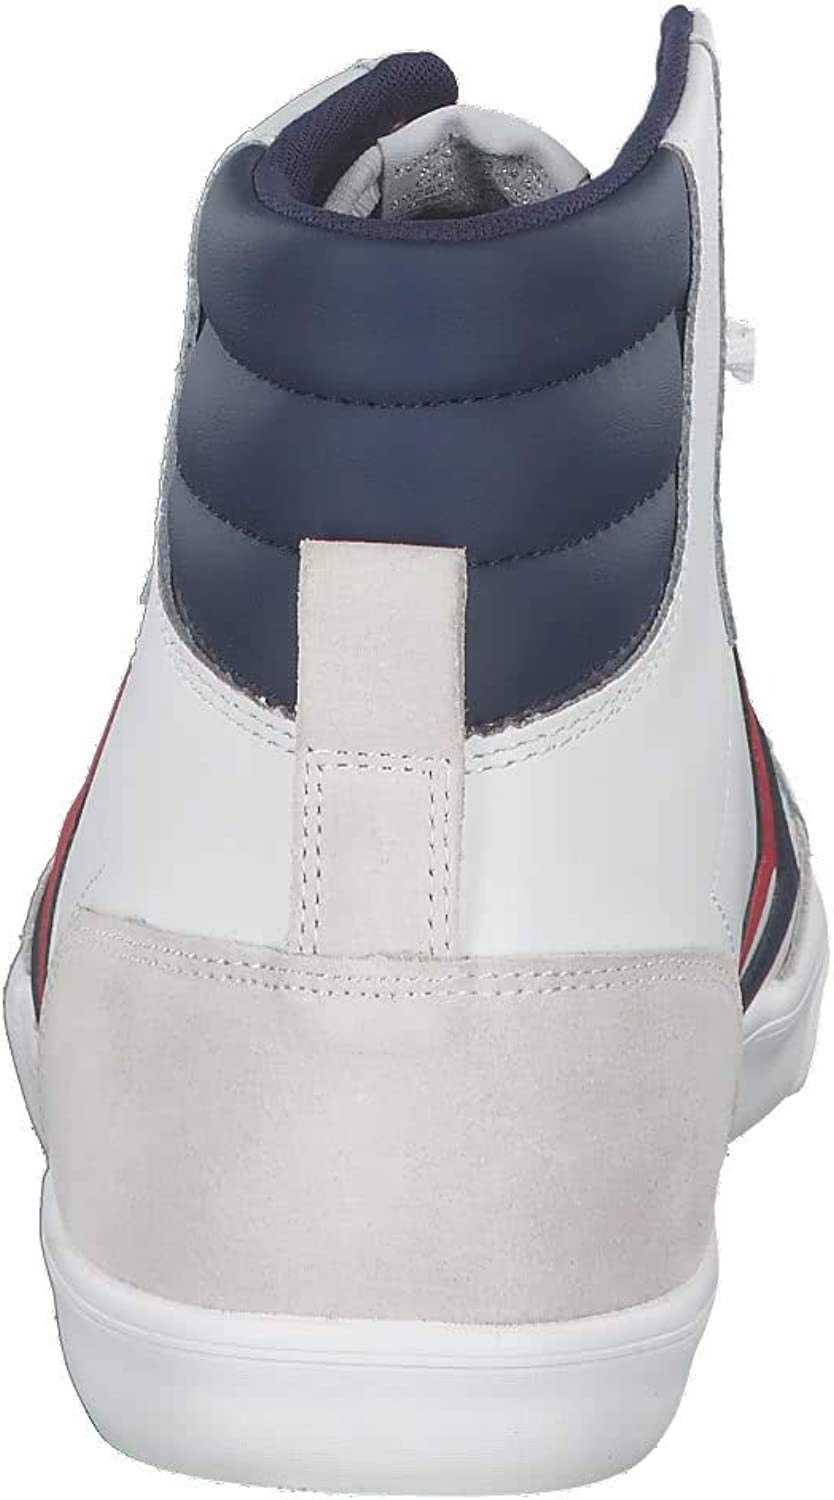 hummel Slimmer Stadil HIGH Leather Trainers Men White/Blue/Red Hi top Trainers White Blue Atoll Silver